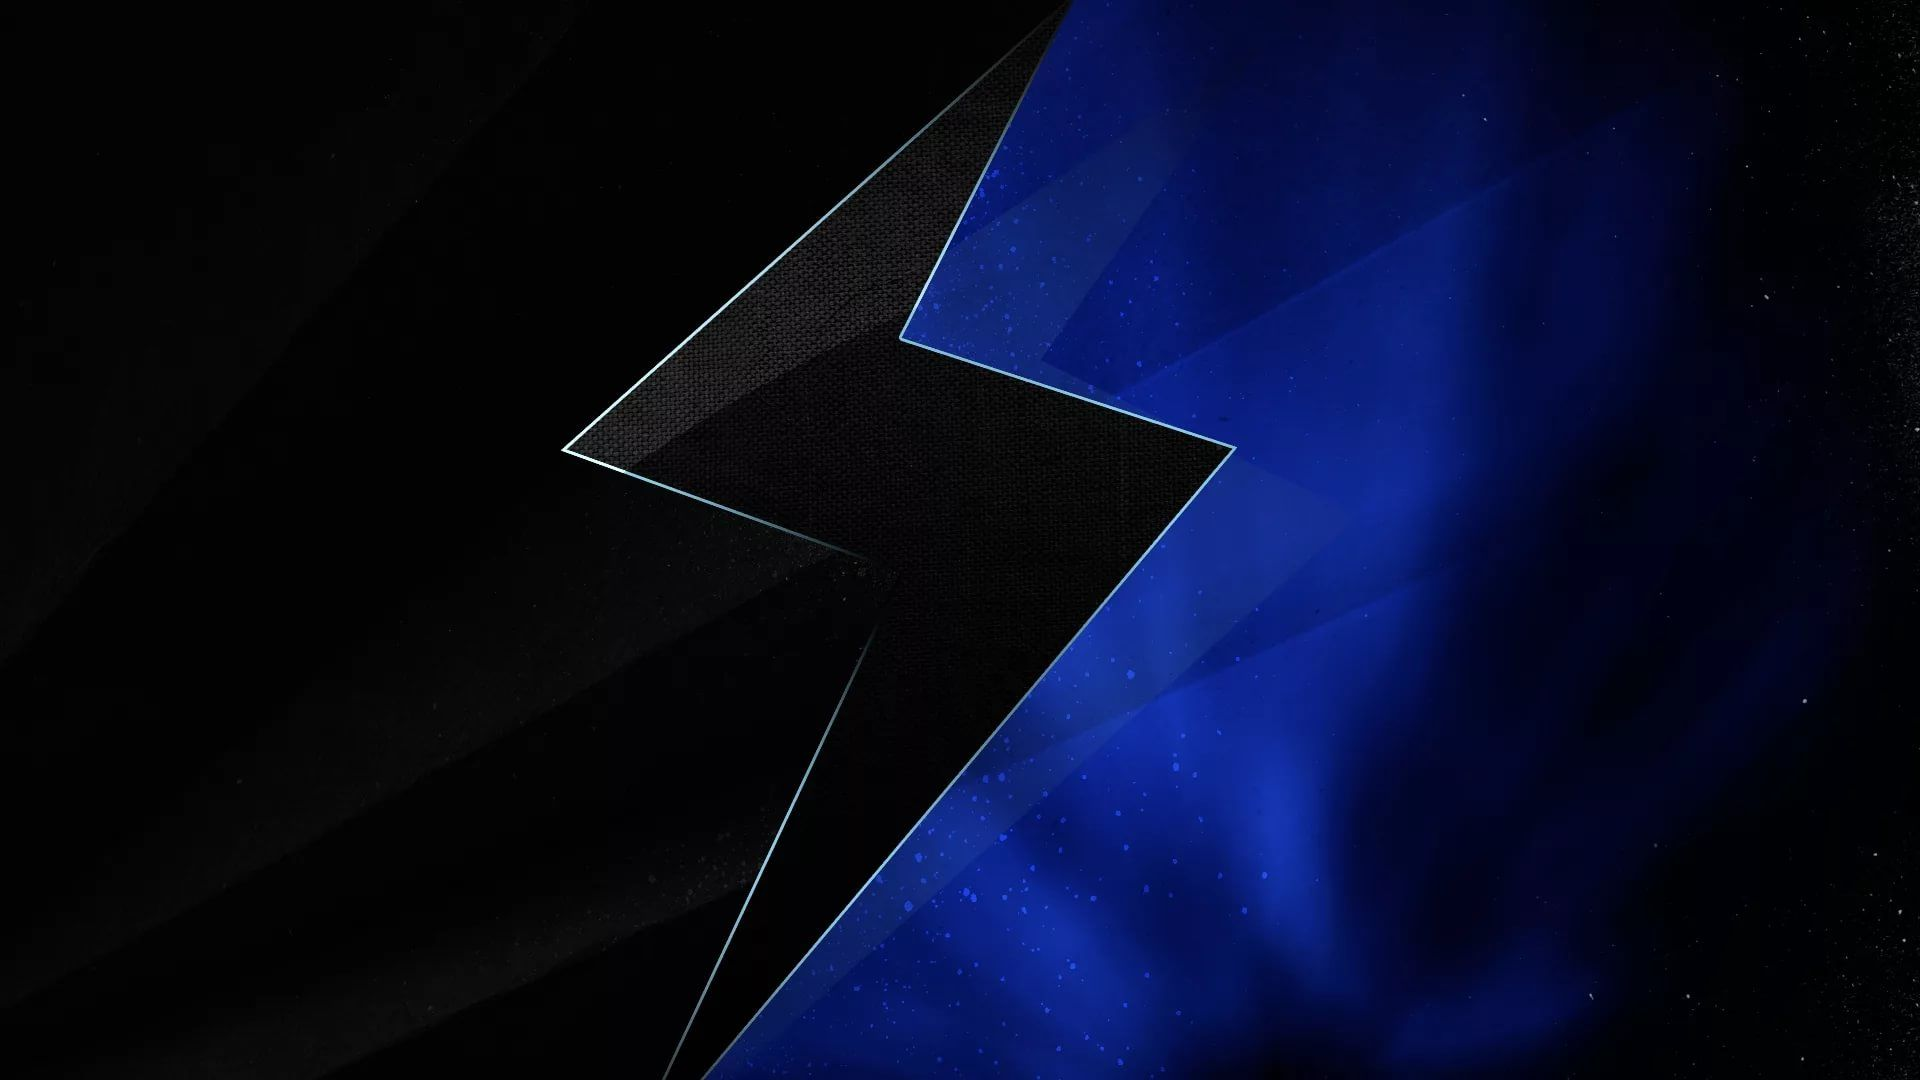 Black And Blue download wallpaper image